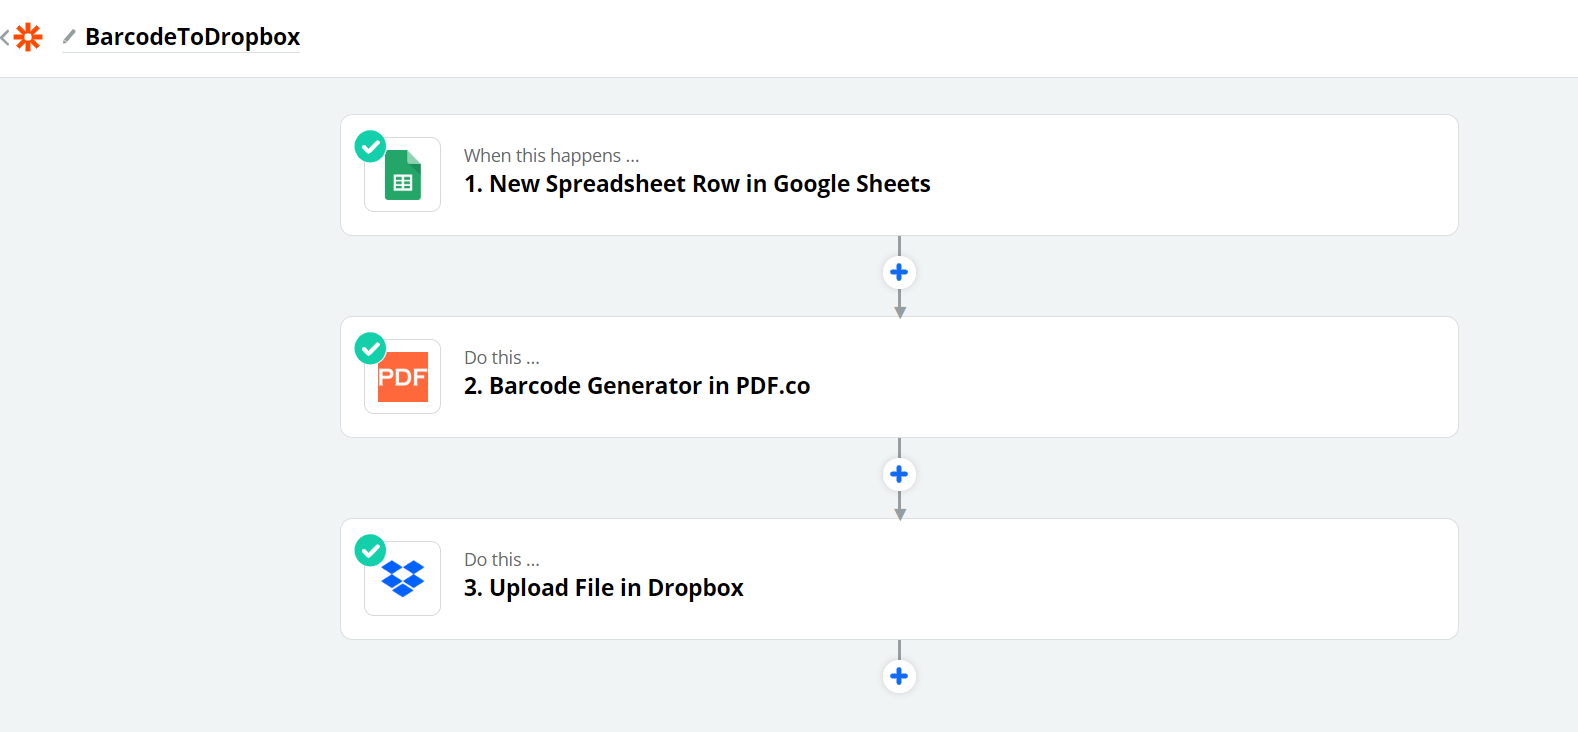 Overview From Spreadsheet, Barcode Generation, and Dropbox Storage